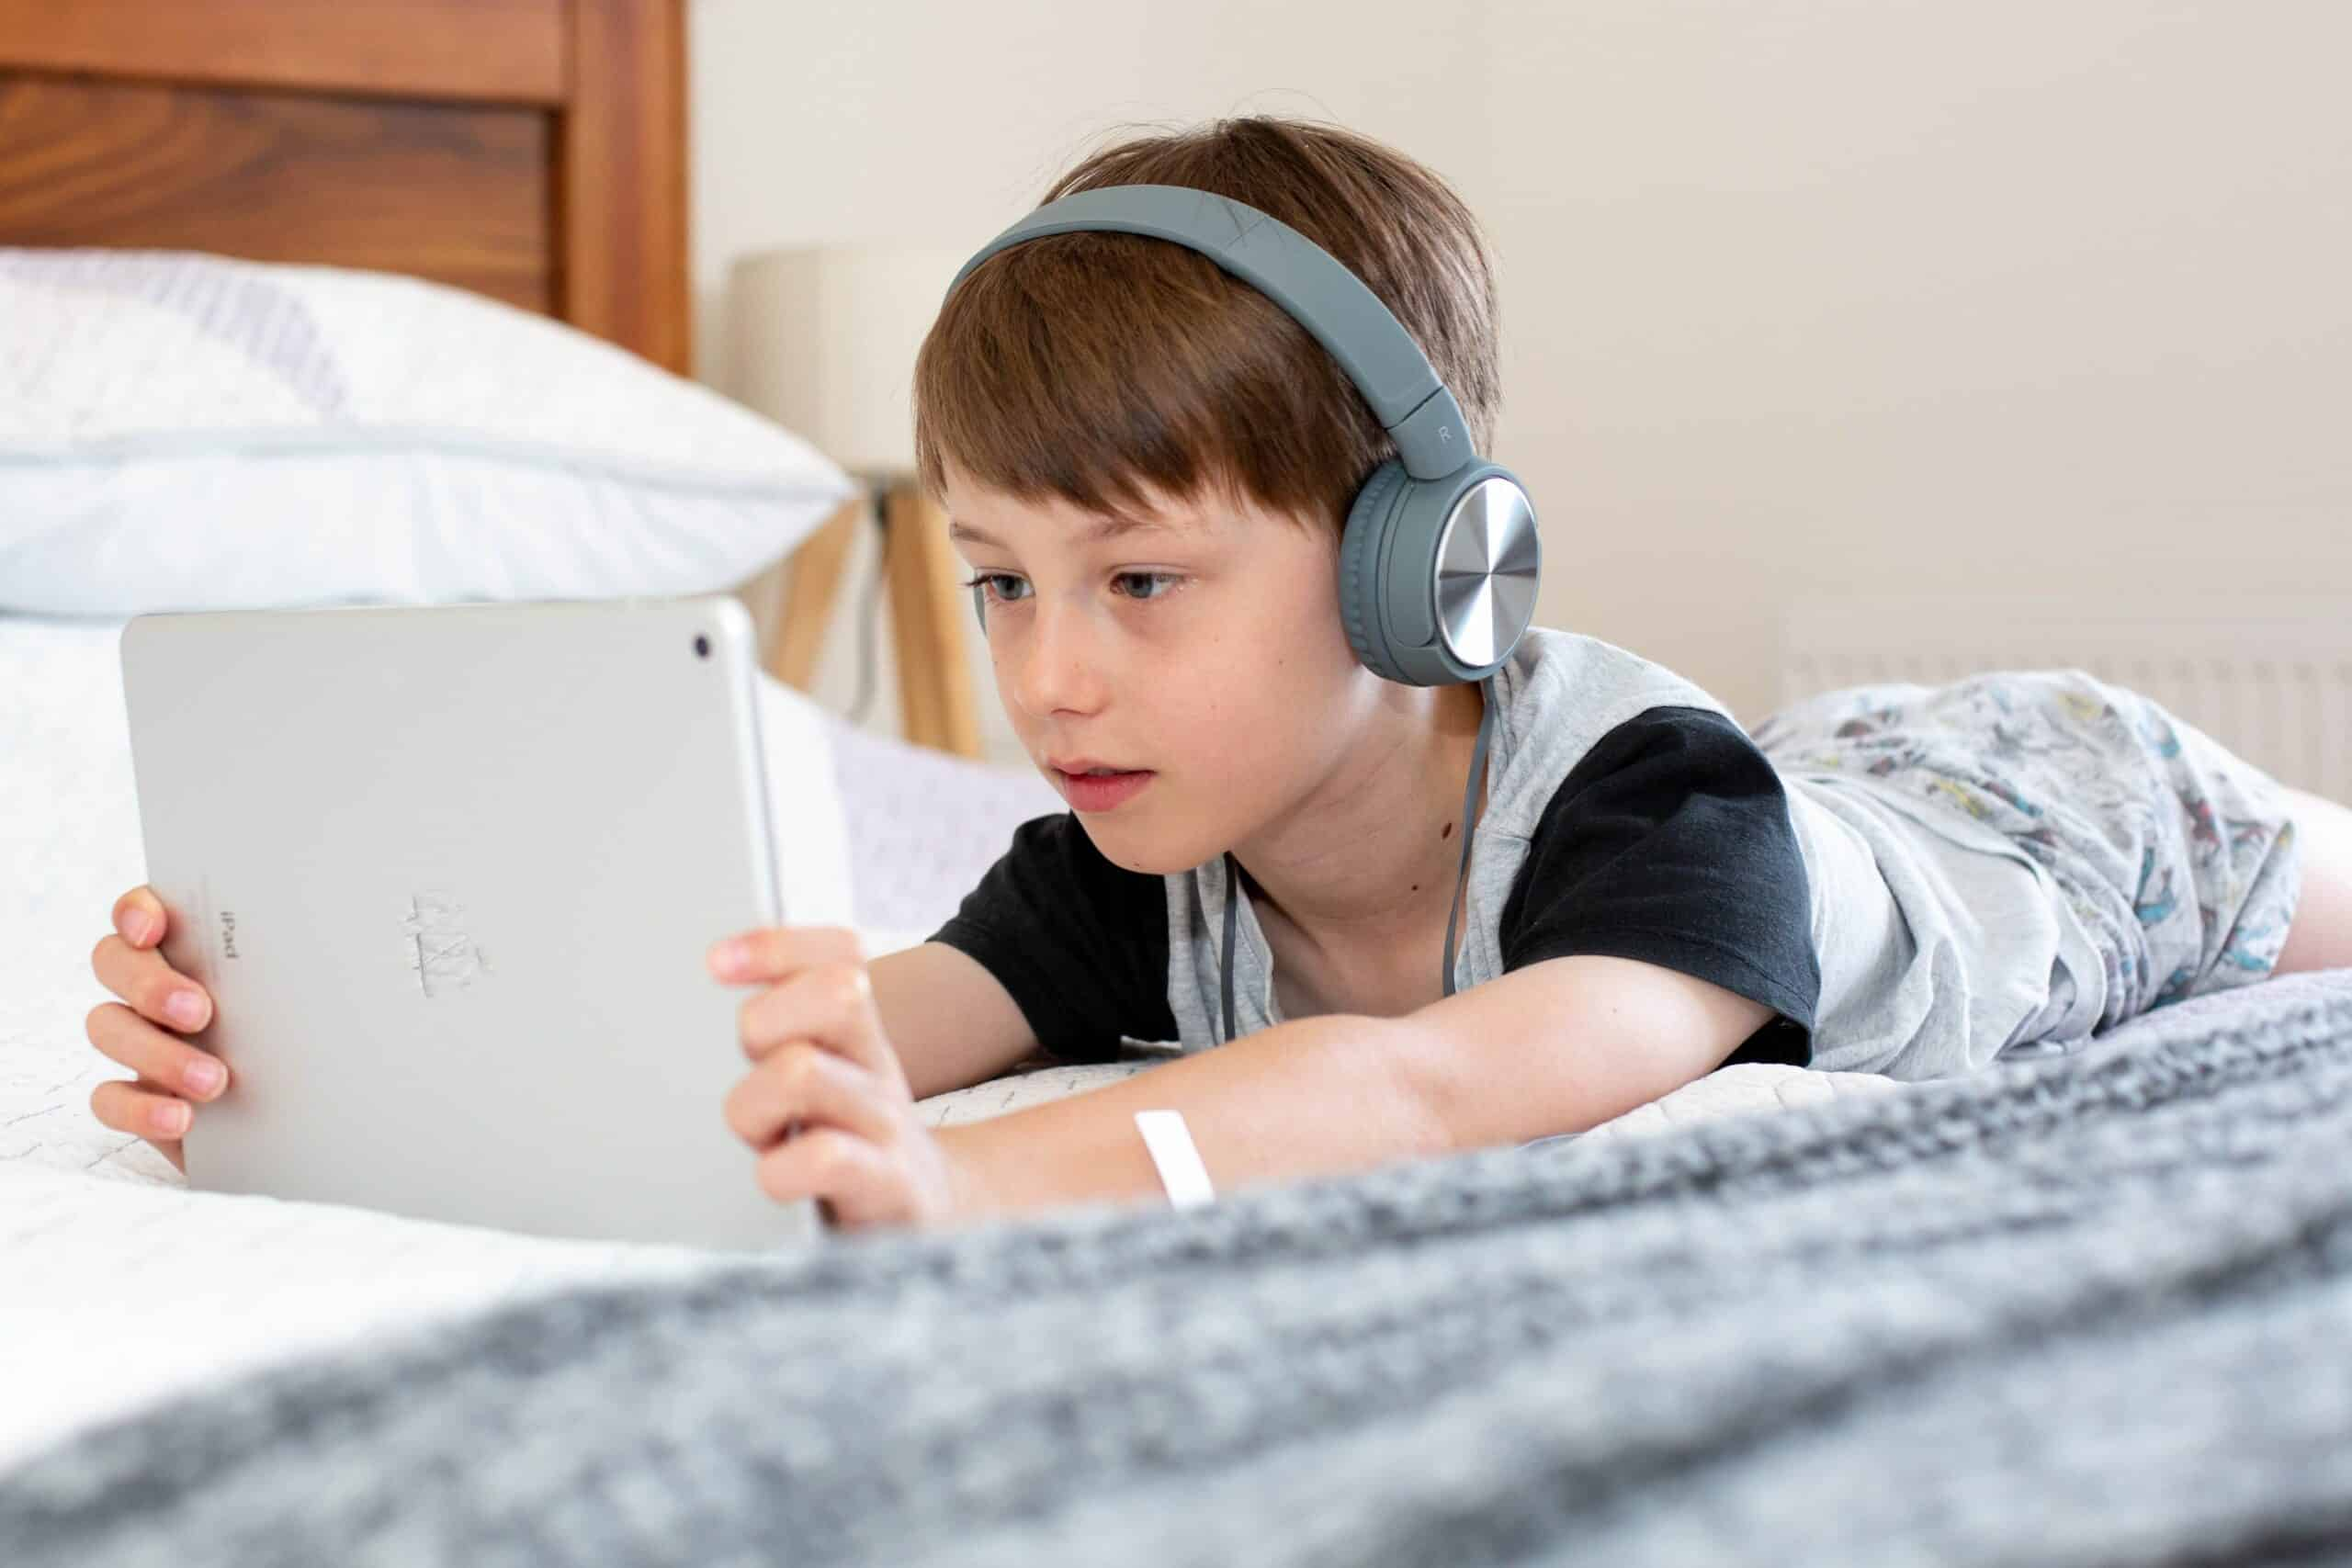 10-best-podcasts-for-kids-to-enjoy-while-learning-at-the-same-time